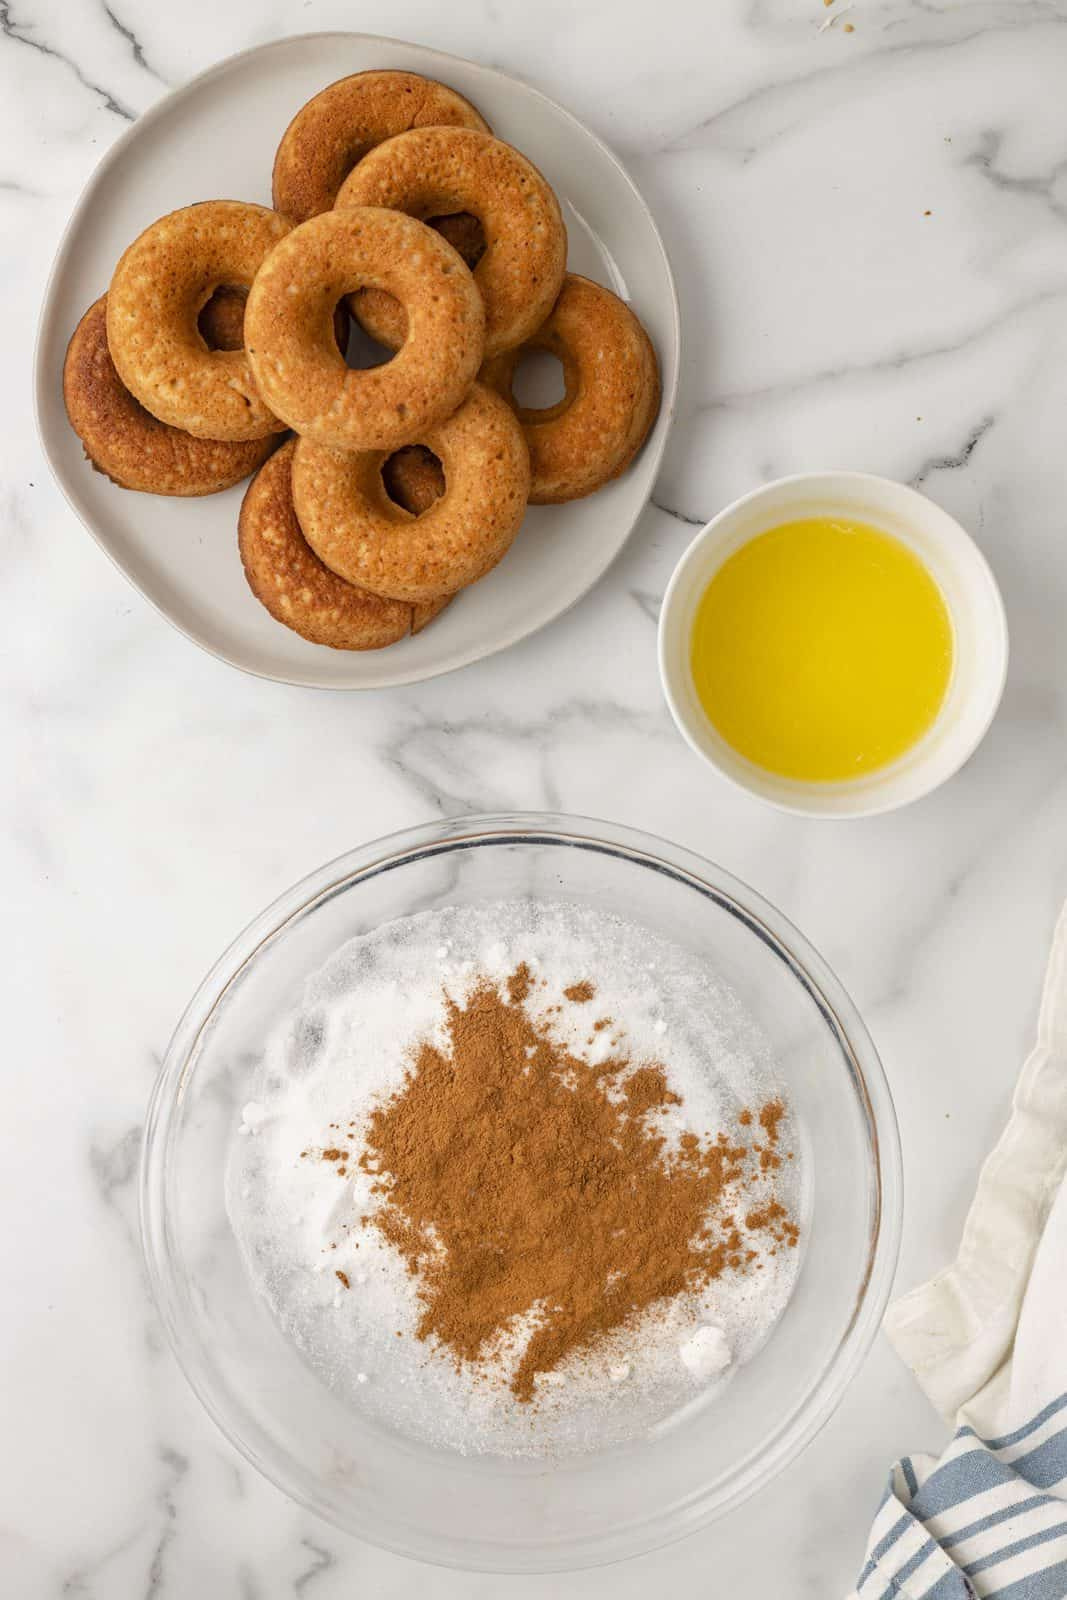 Cinnamon and sugar in bowl with butter and plate of donuts.